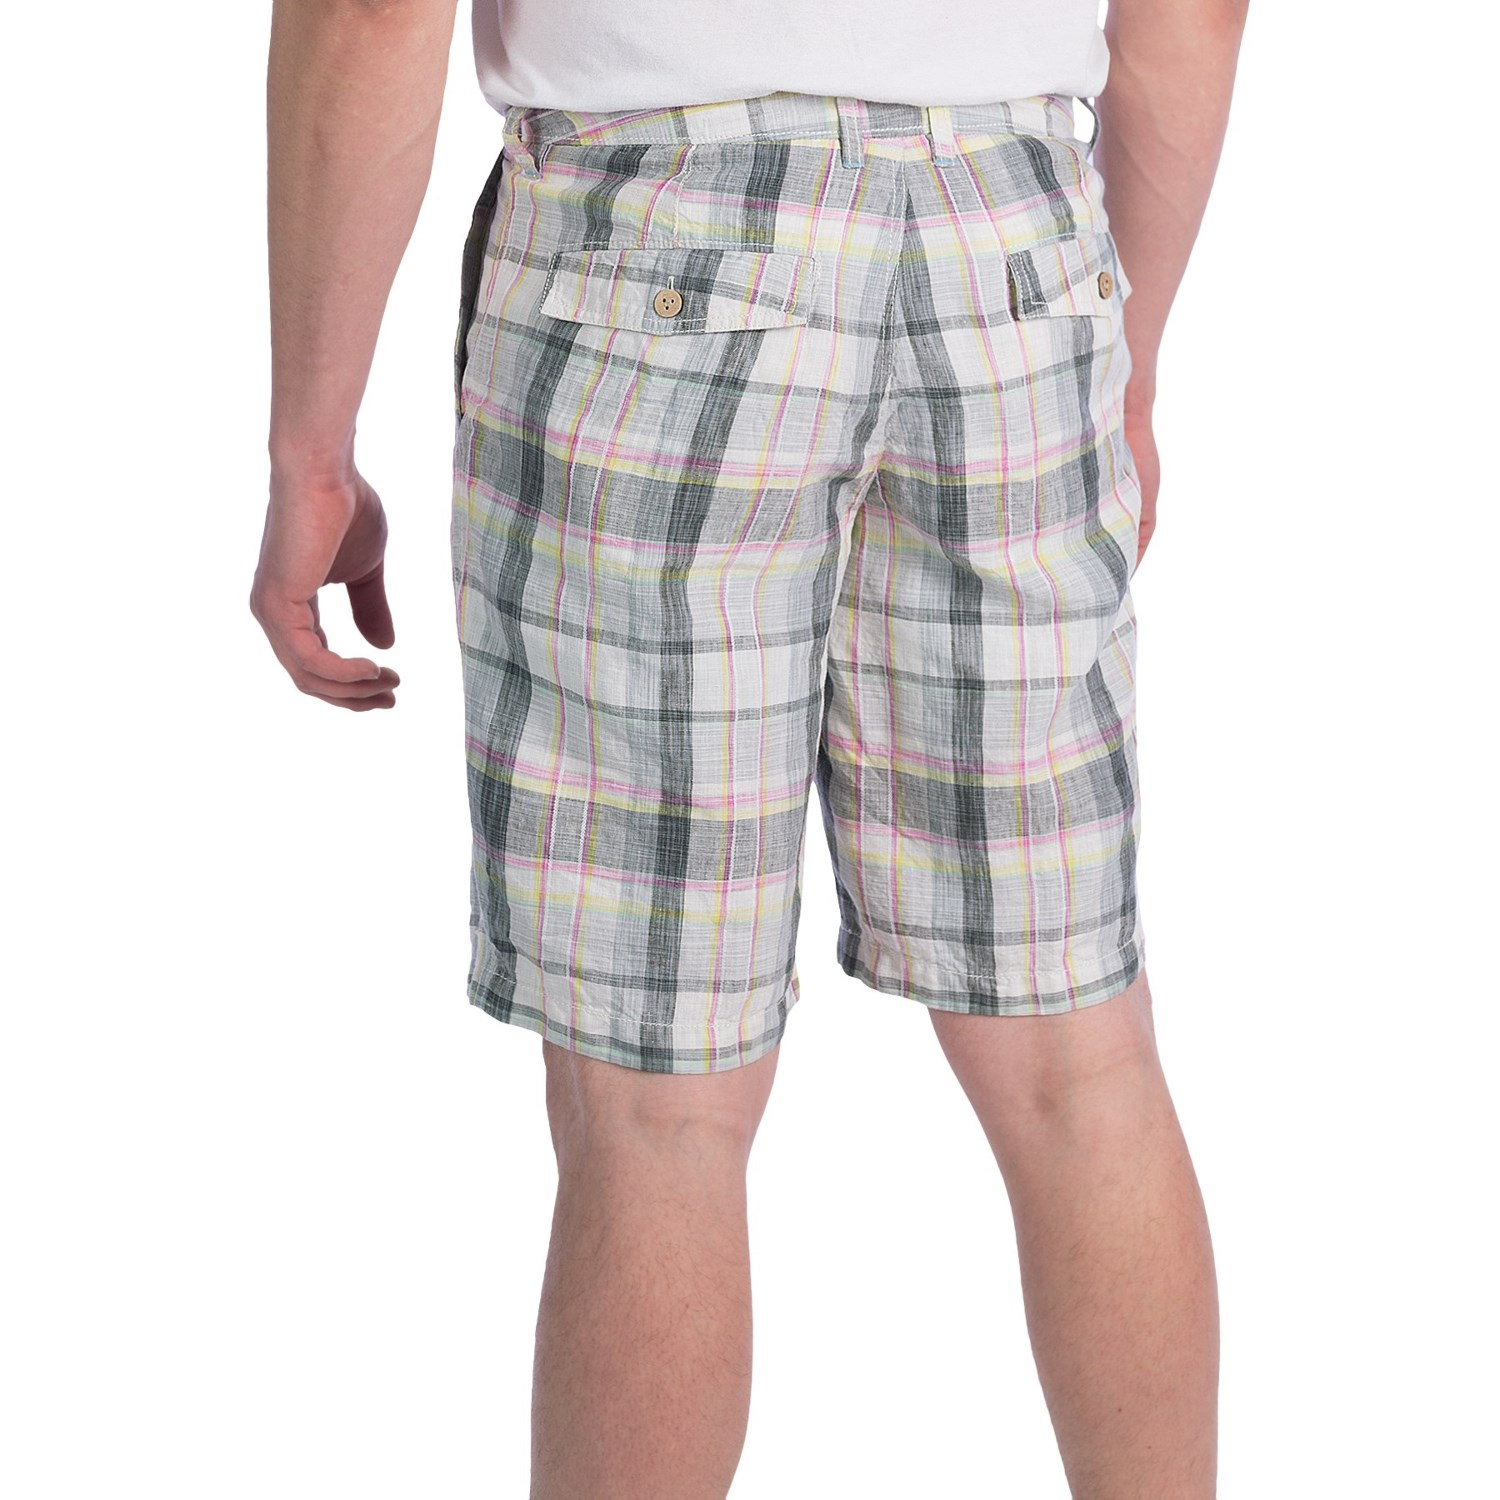 Men's Shorts: What To Wear?